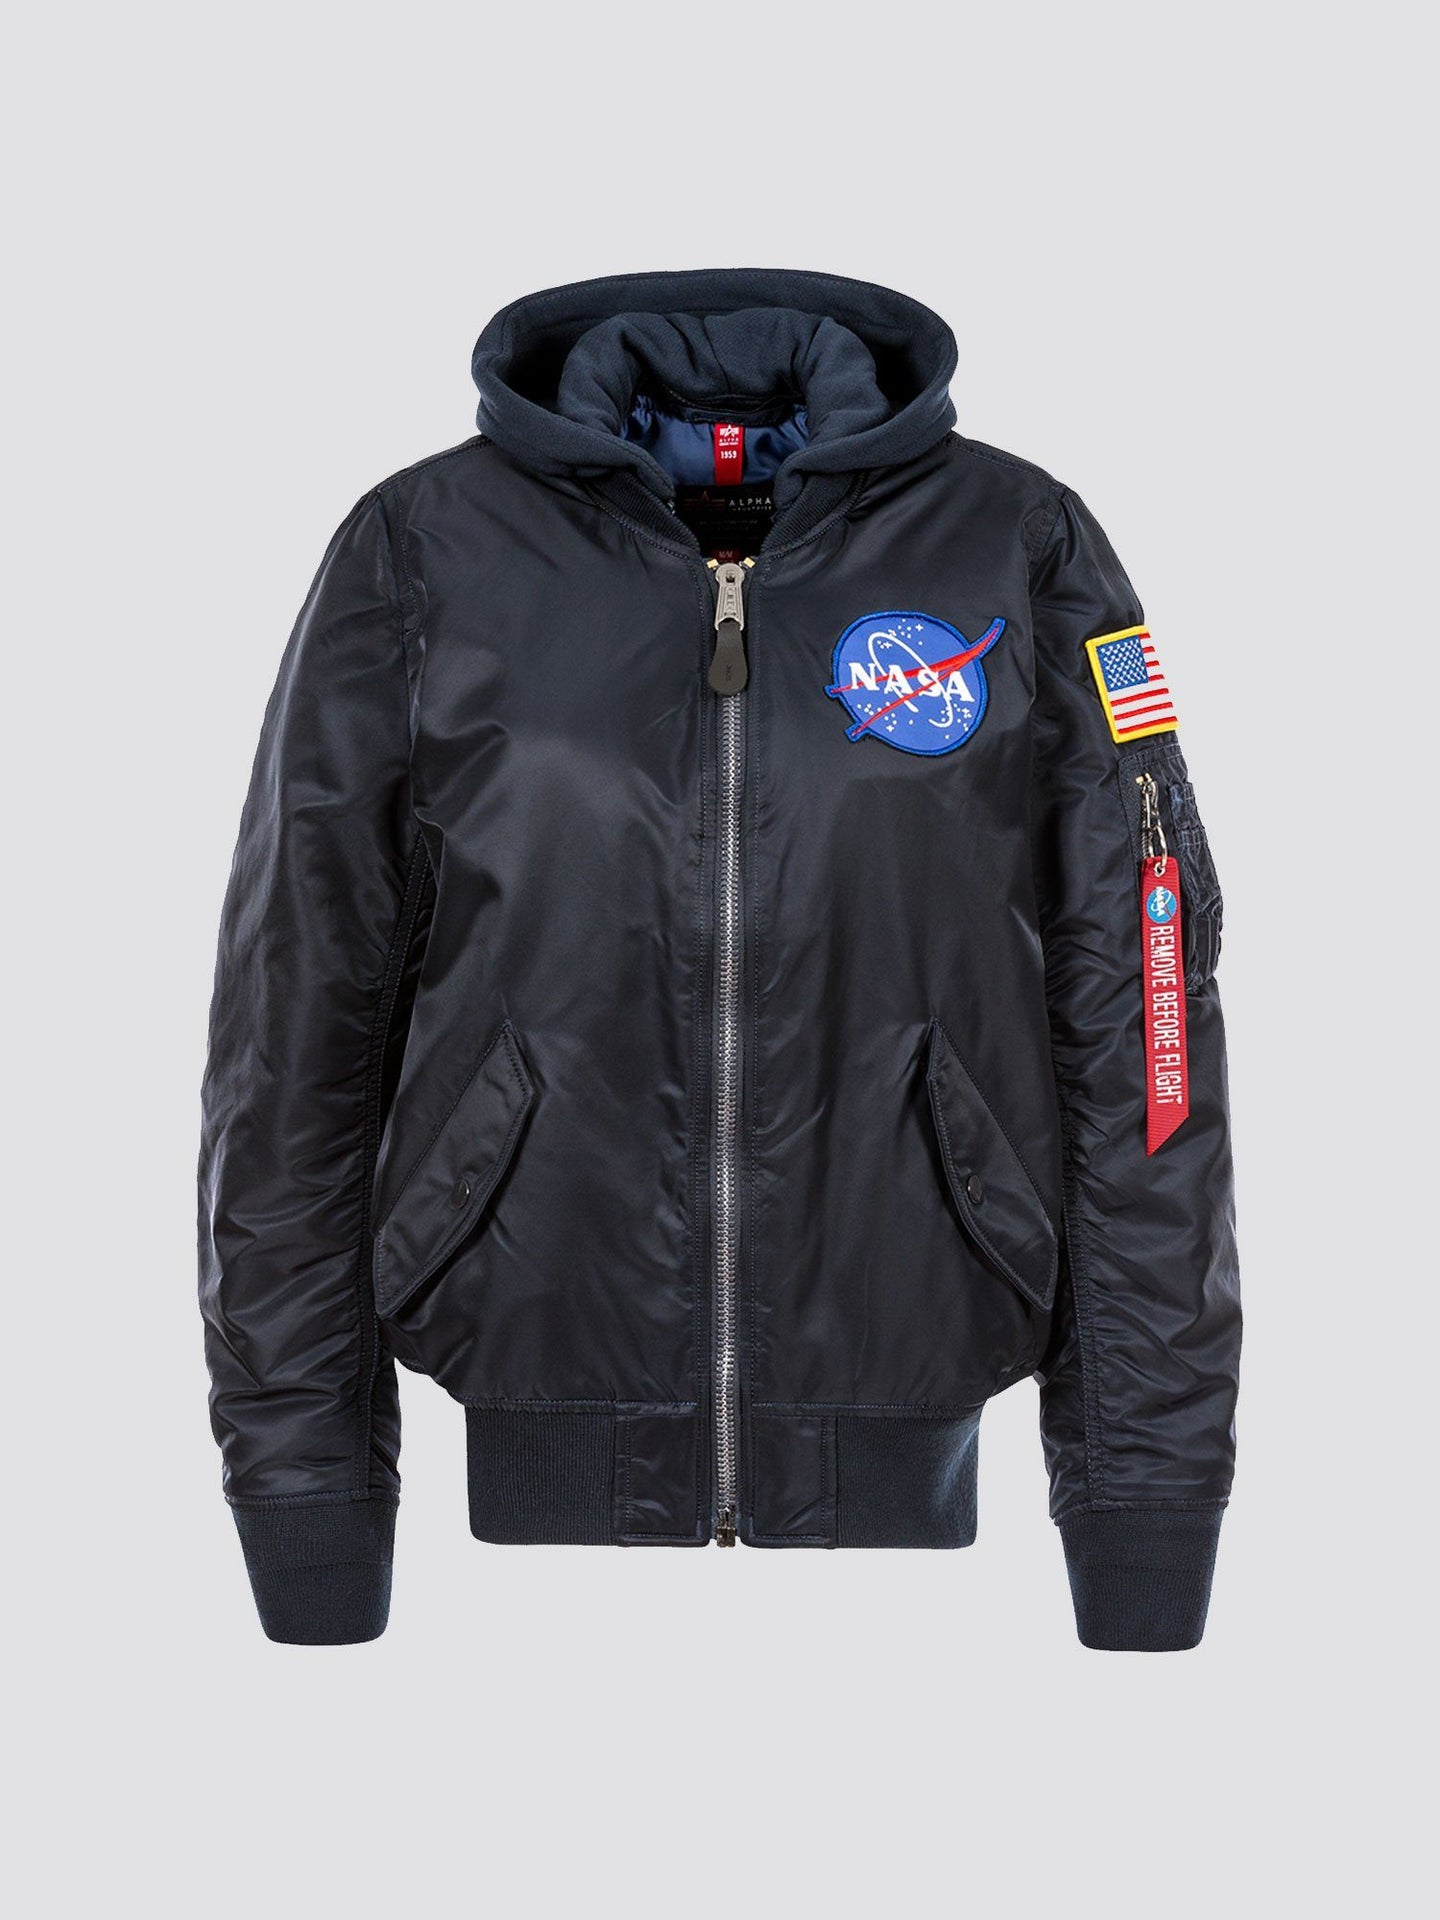 MA-1 HOODED NASA BOMBER JACKET OUTERWEAR Alpha Industries REPLICA BLUE 2XL